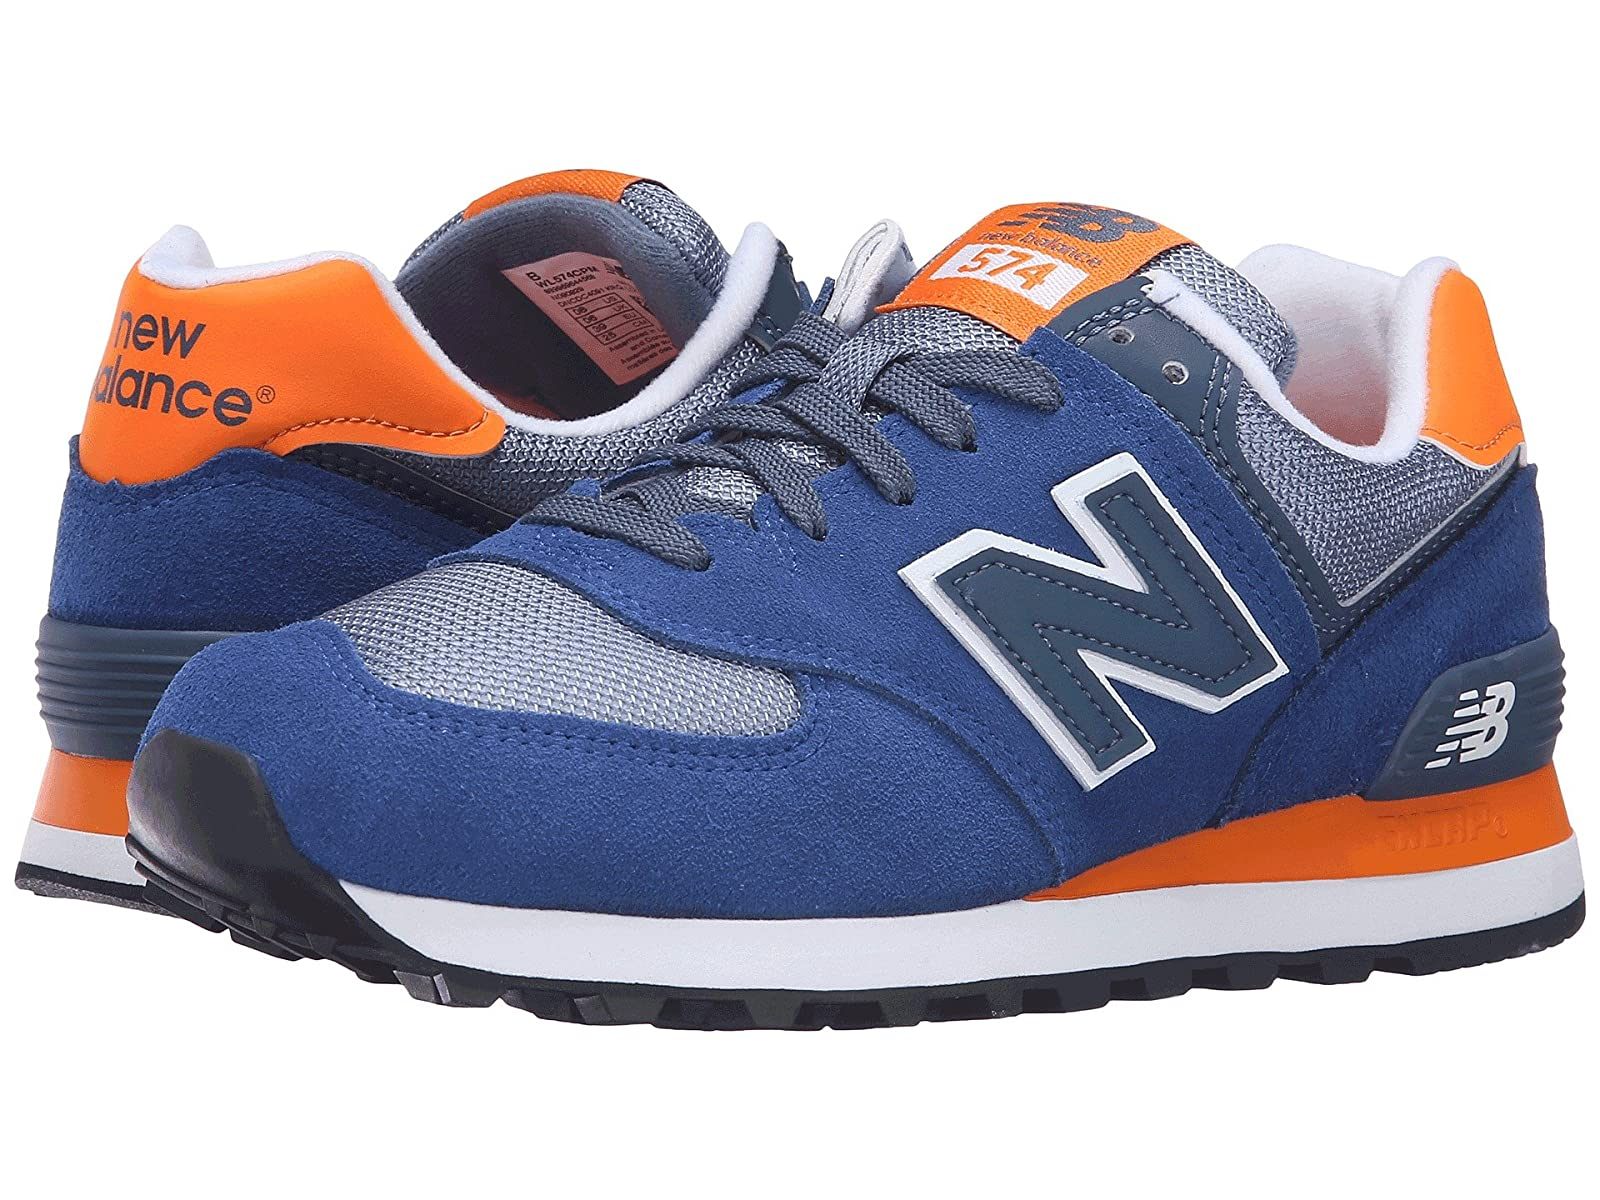 New Balance Classics WL574 - cost Core Plus Collection -Men/Women-Low cost - c4339b